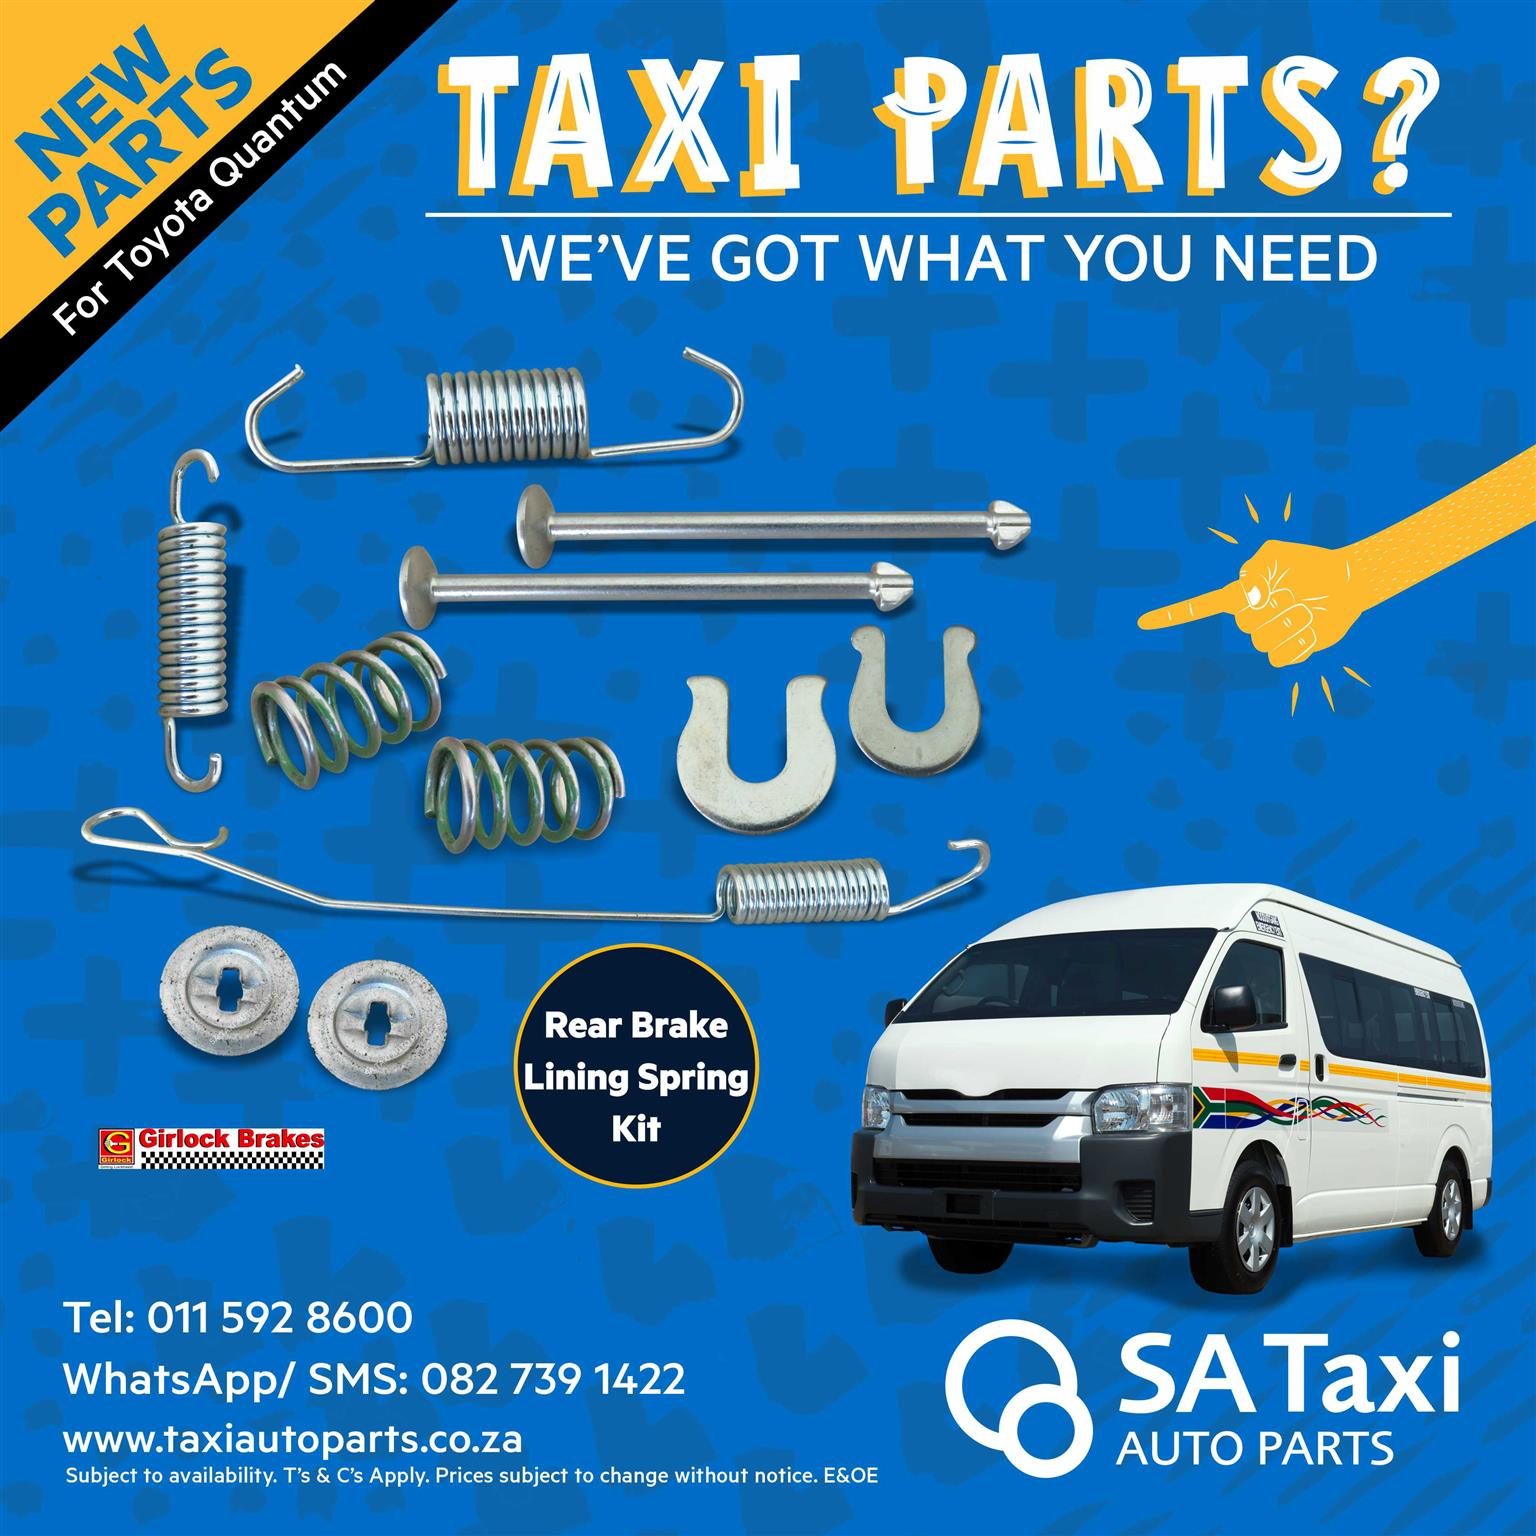 New Girlock Rear Brake Lining Spring Kit suitable for Toyota Quantum - SA Taxi Auto Parts